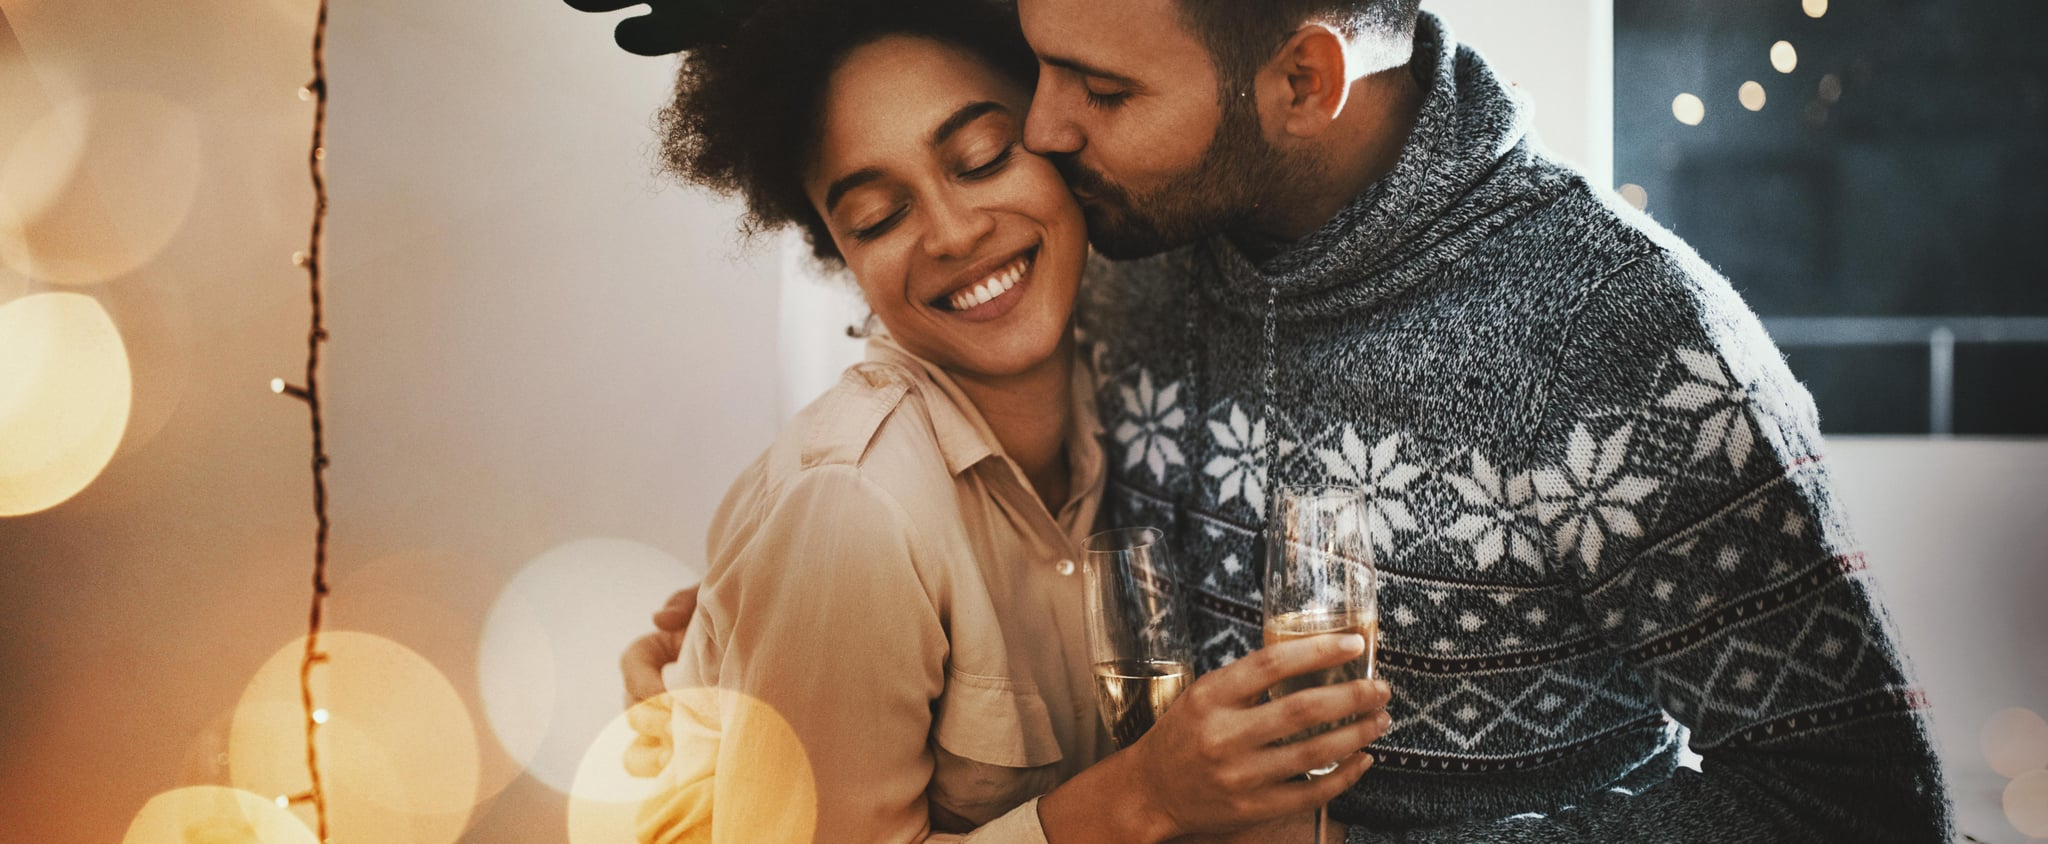 Before 2020, Look Back at Your 2019 Love Horoscope